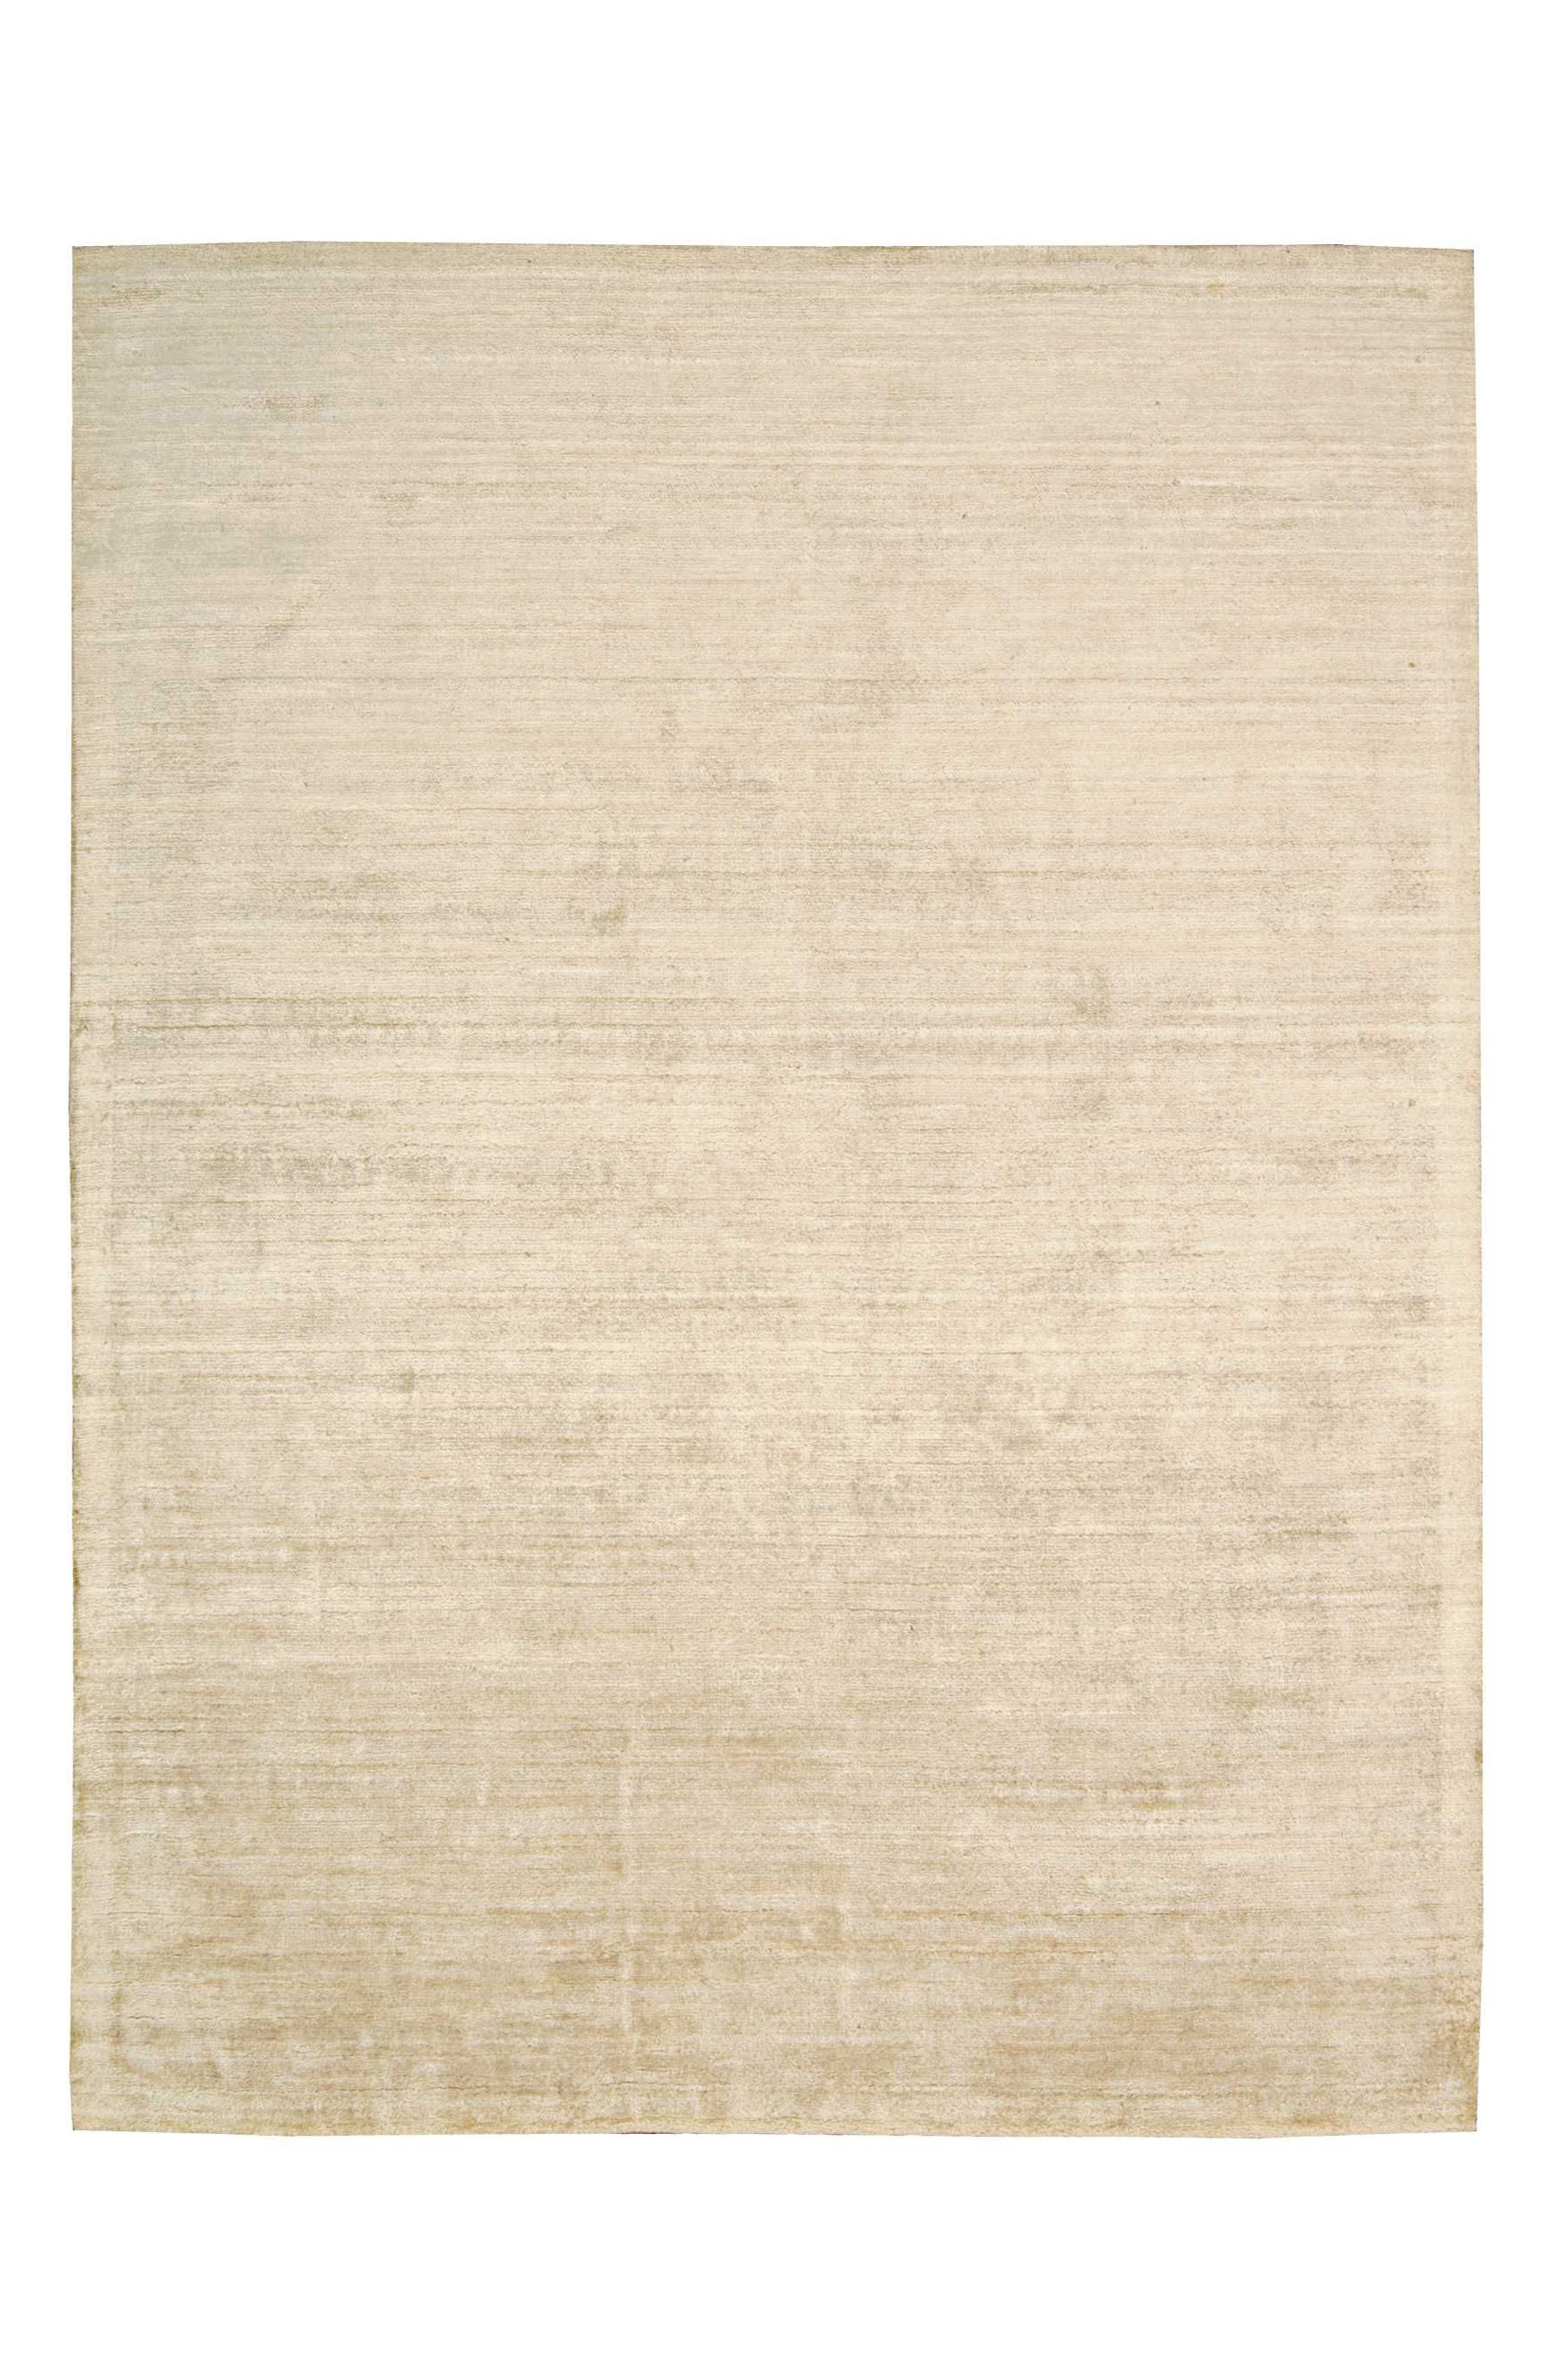 Home Shimmer Mineral Area Rug,                             Main thumbnail 4, color,